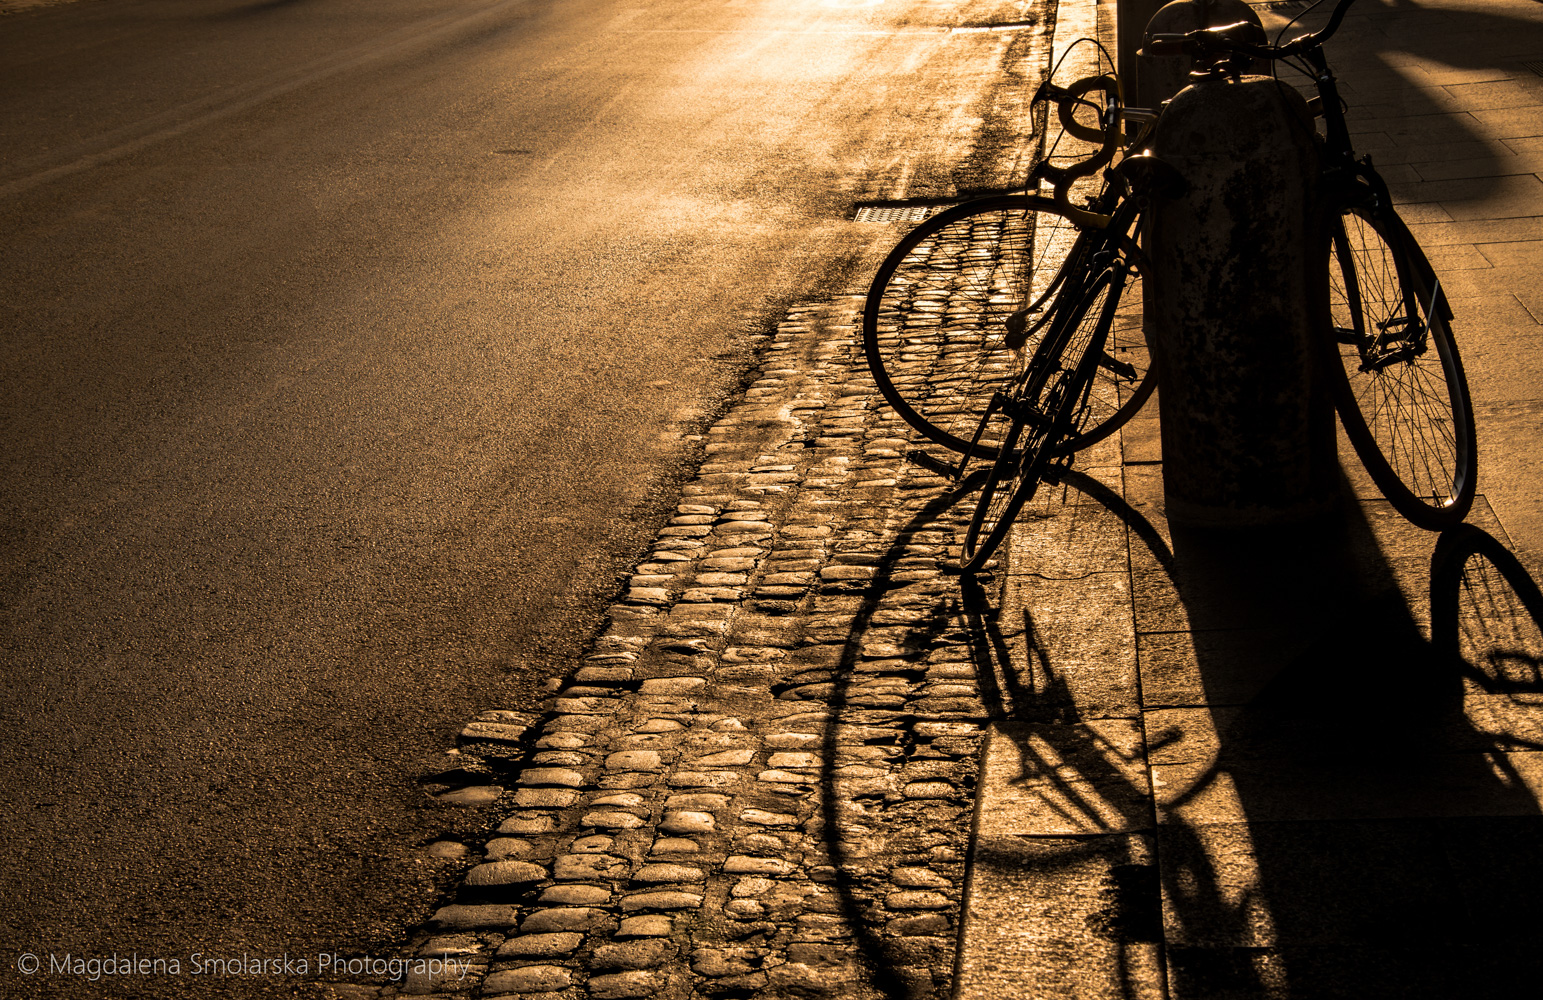 London & Brighton Portrait Photographer- Bicycle sunset in Rome with Magdalena Smolarska